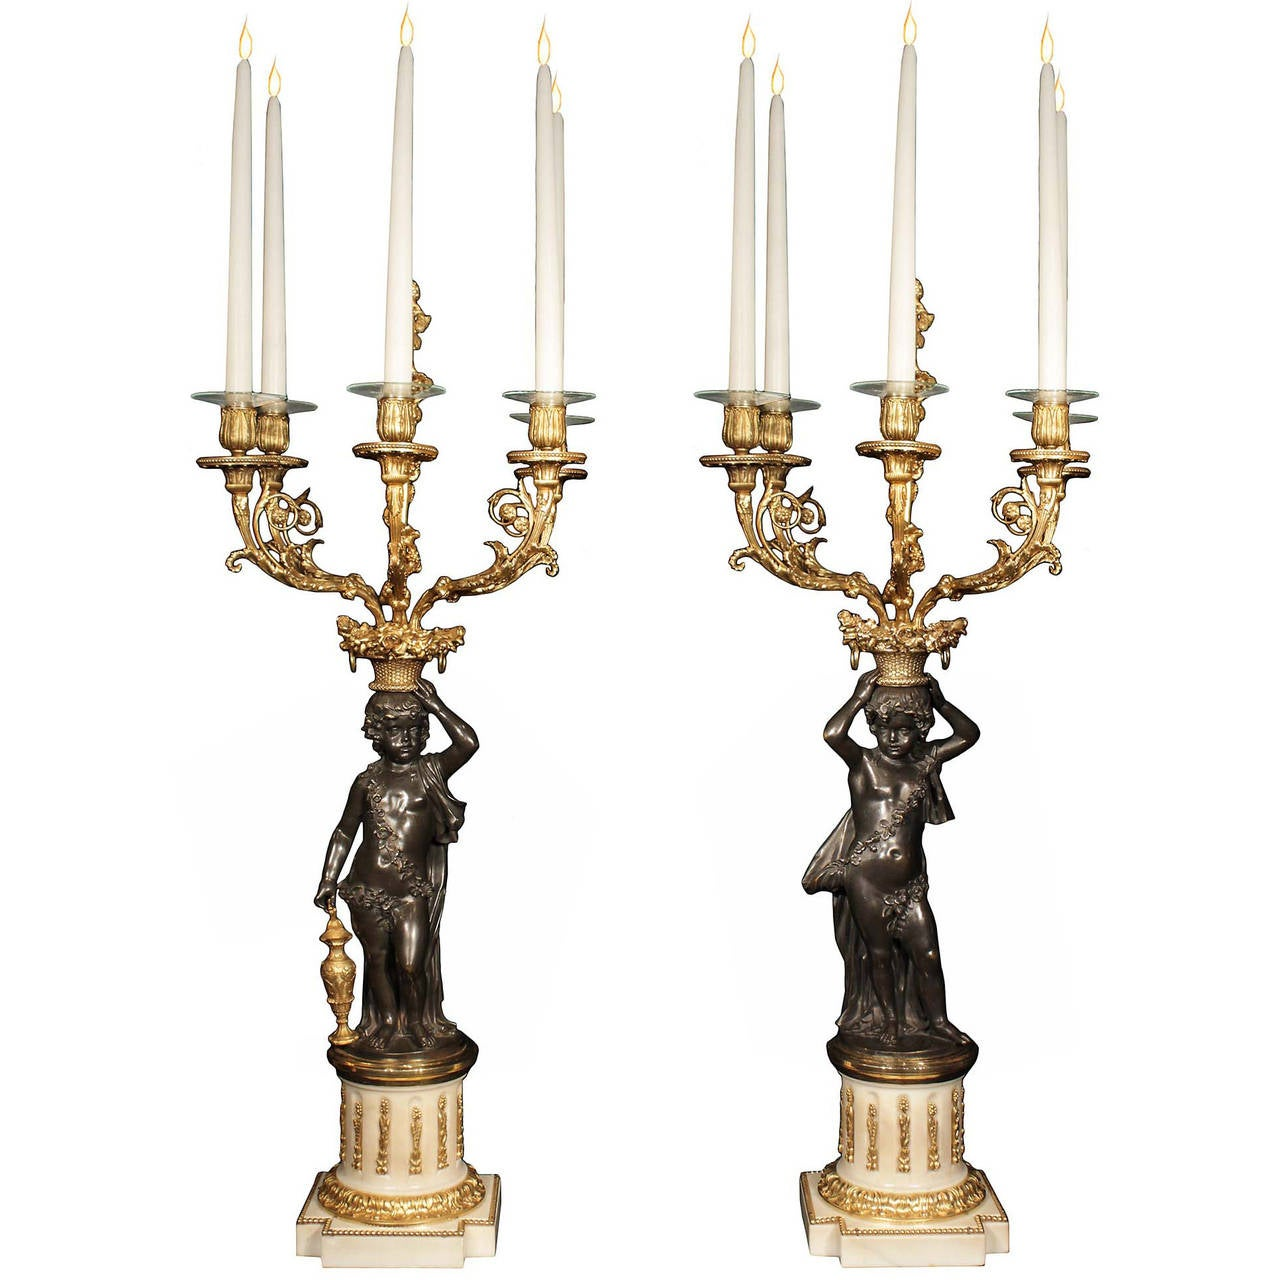 French 19th Century Louis XVI Style Patinated Bronze and Ormolu Candelabras